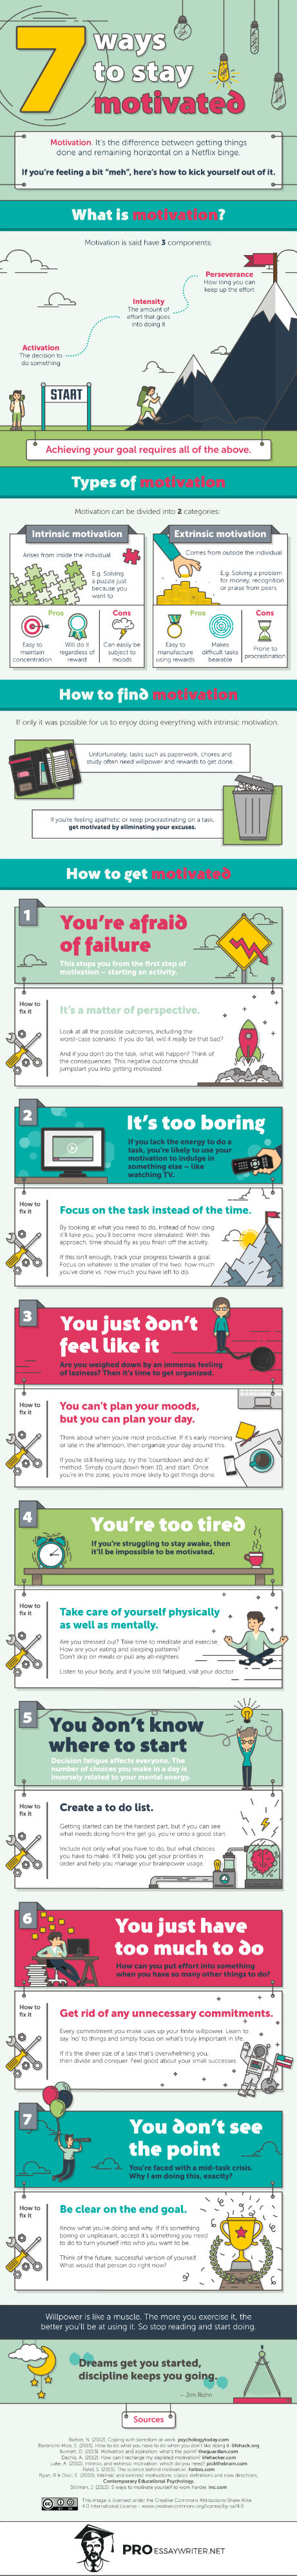 7 Ways To Stay Motivated [infographic]